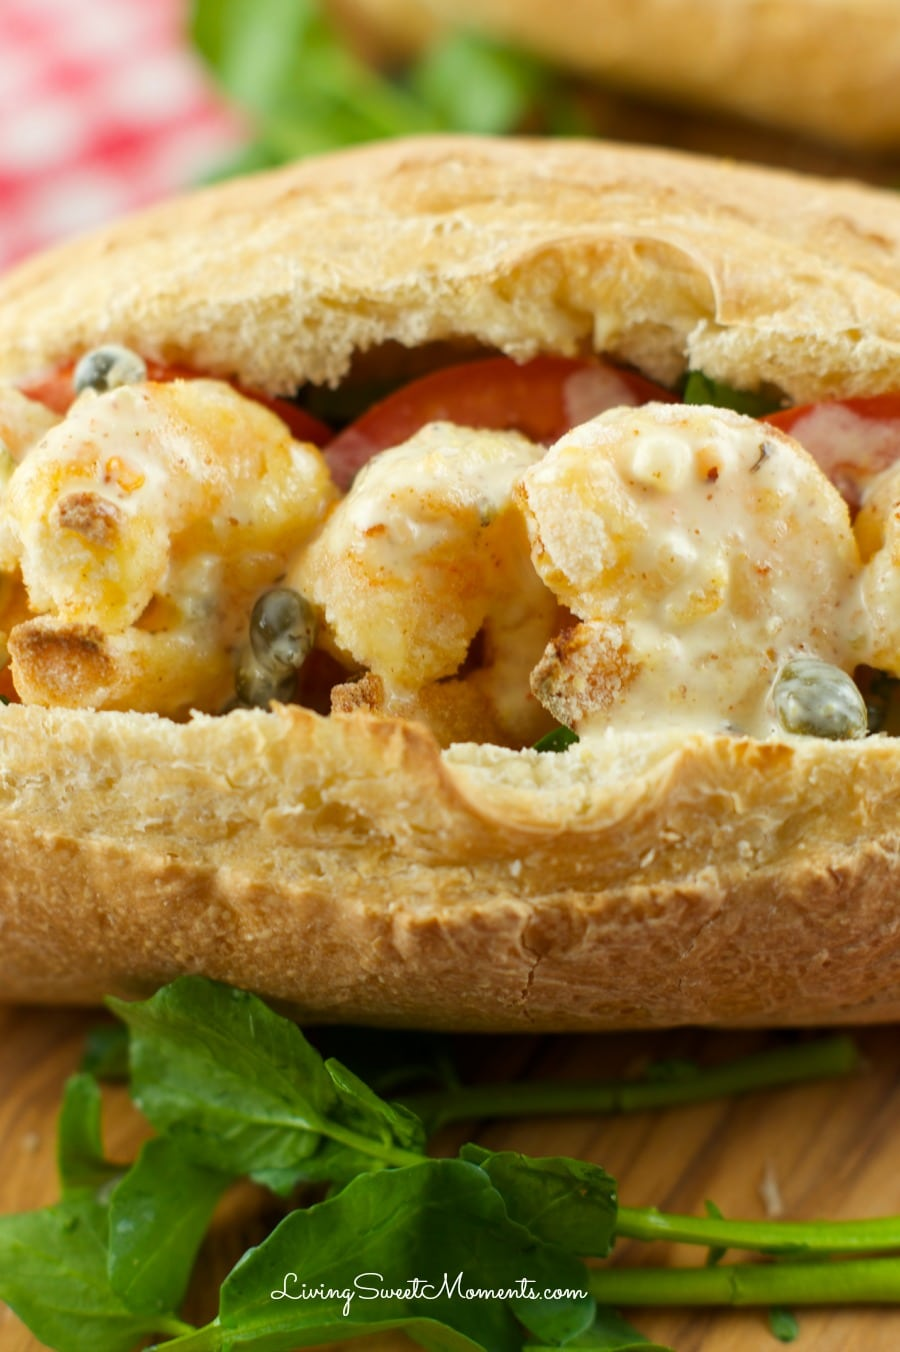 Shrimp Po'boys - served with a delicious creole Remoulade sauce. Shrimp is battered in cornmeal and oven fried to perfection. A perfect addition to your Mardi Gras celebration